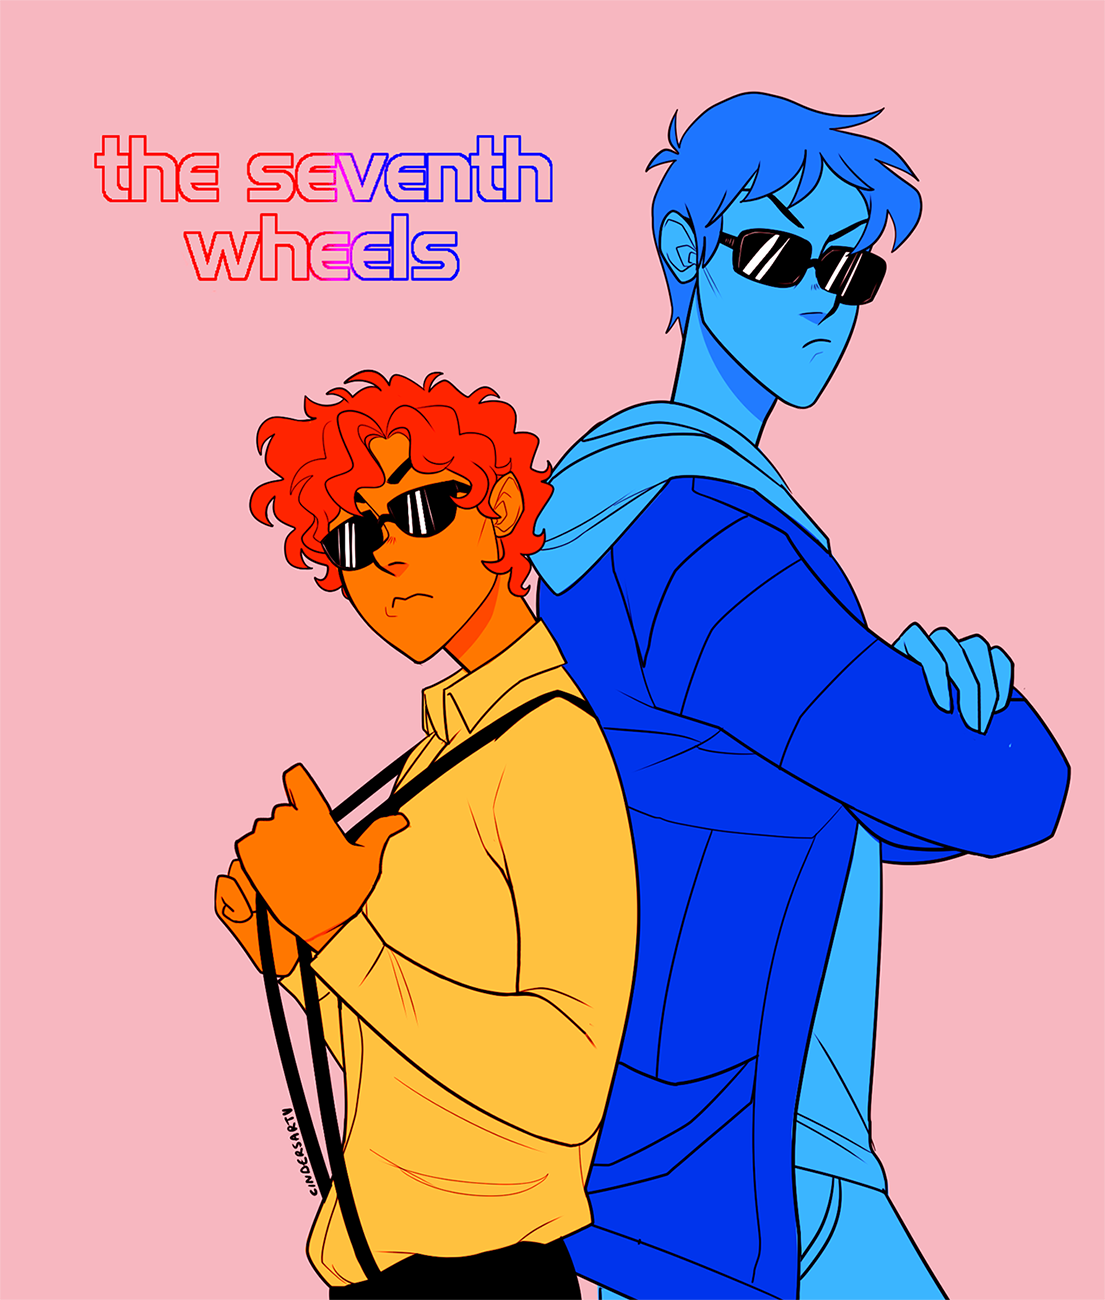 Commission 2 Leo Valdez Lance Mcclain Promoing Their New Band The Seventh Wheels Percy Jackson Fandom Lance Mcclain Voltron